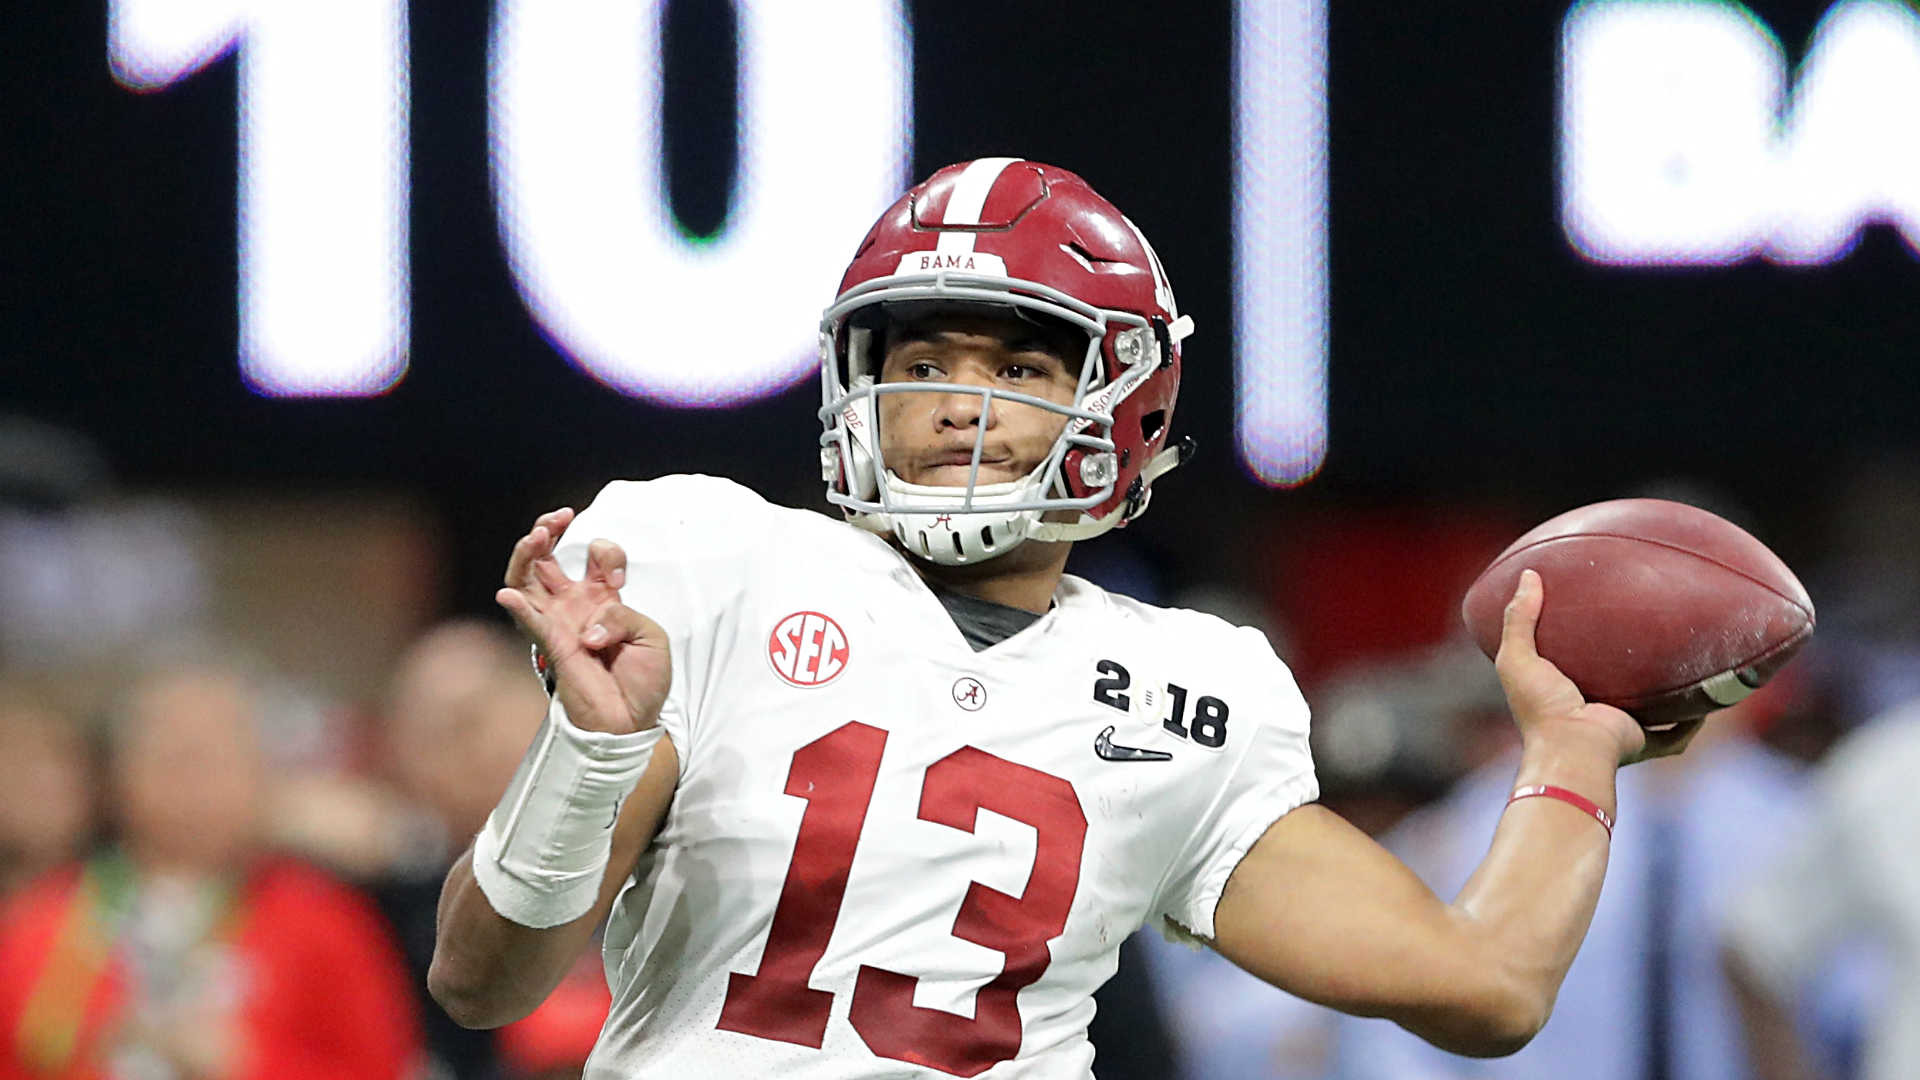 Tide was in danger of losing Tagovailoa, former OC Kiffin says